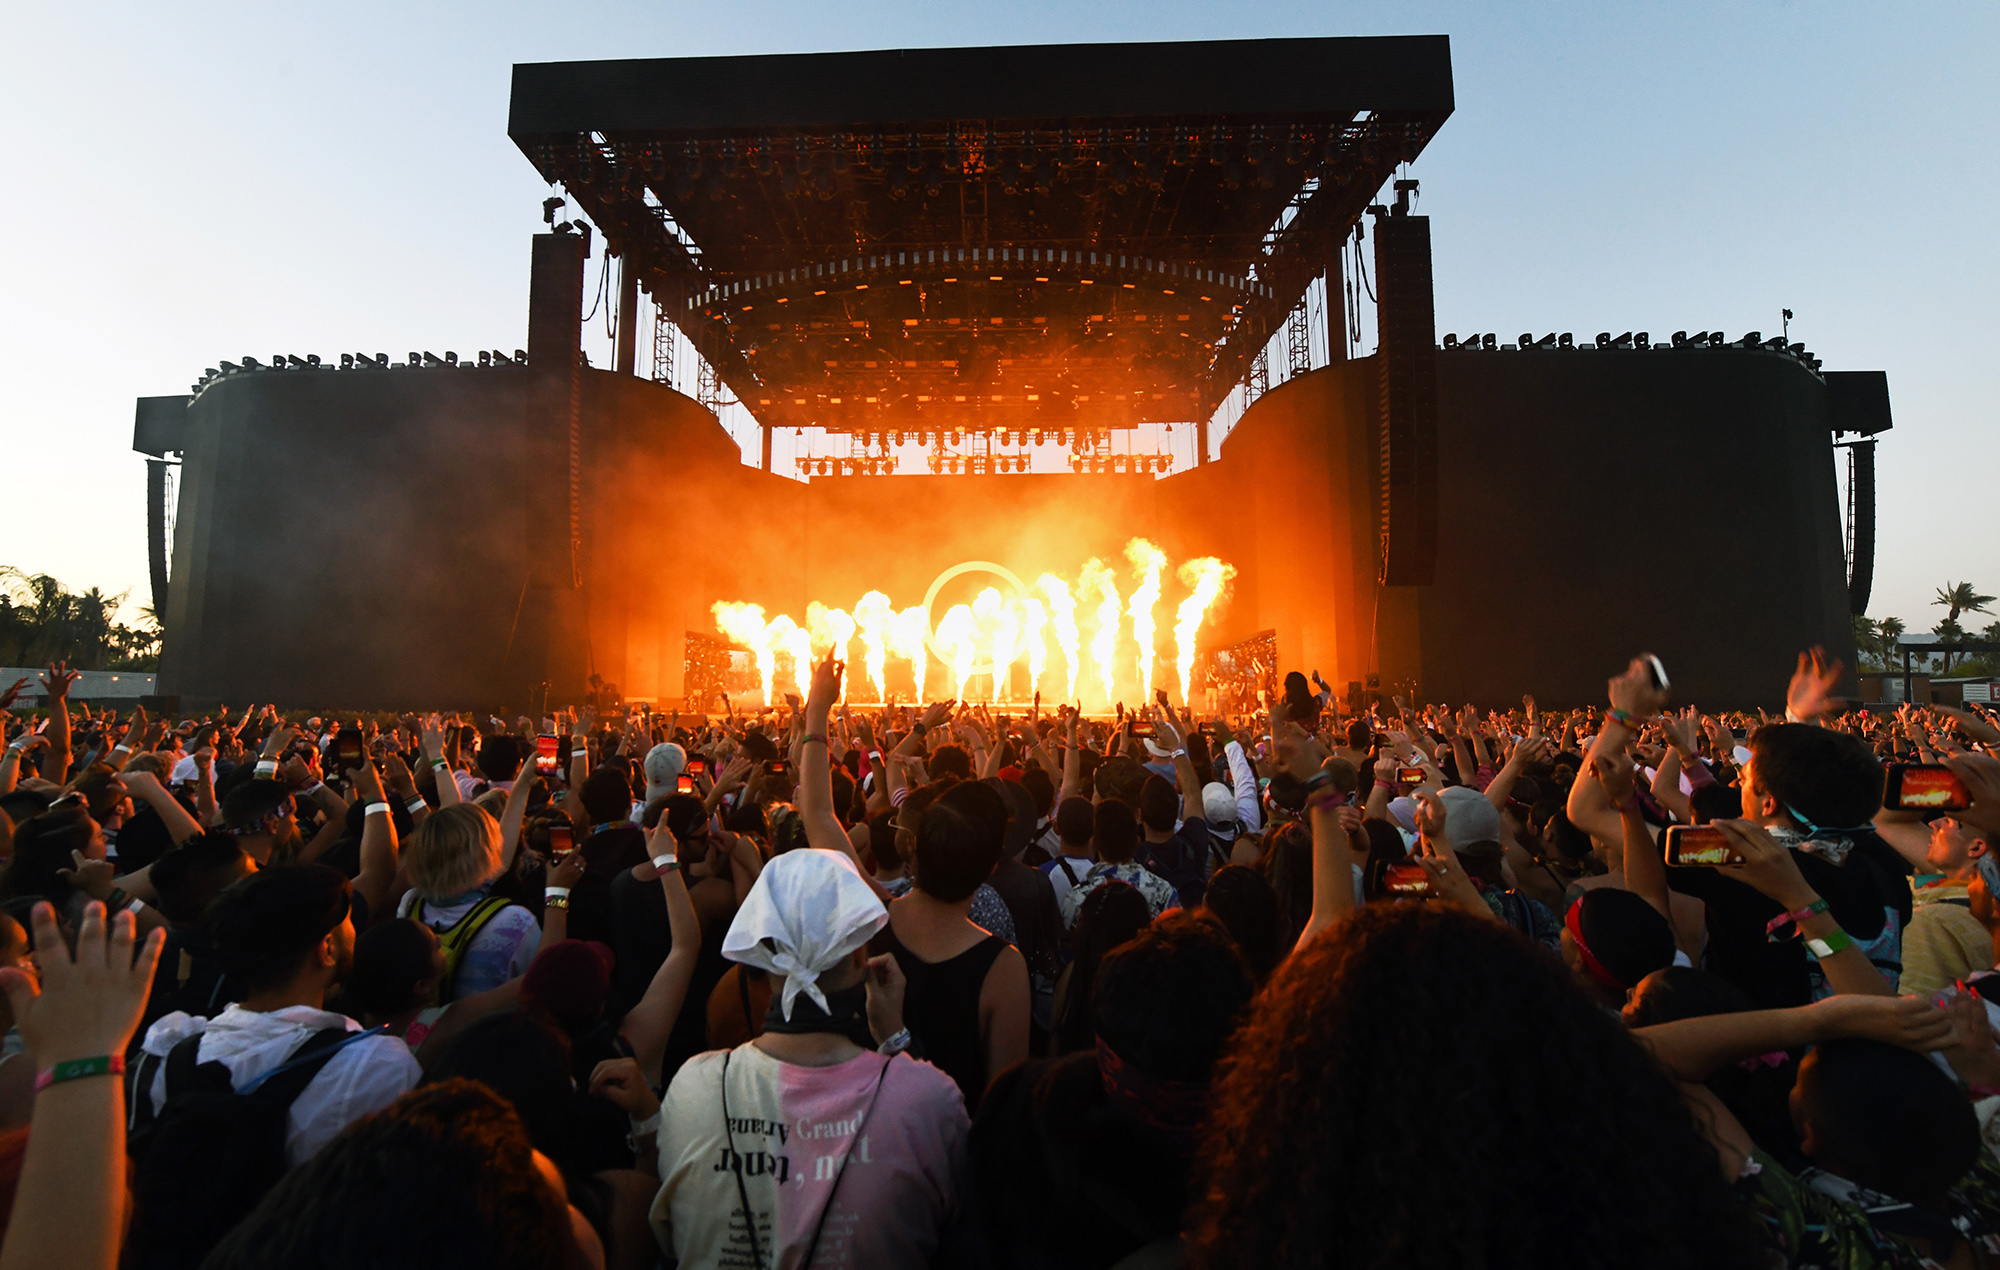 Coronavirus: Healthcare expert predicts concerts will not return until autumn 2021